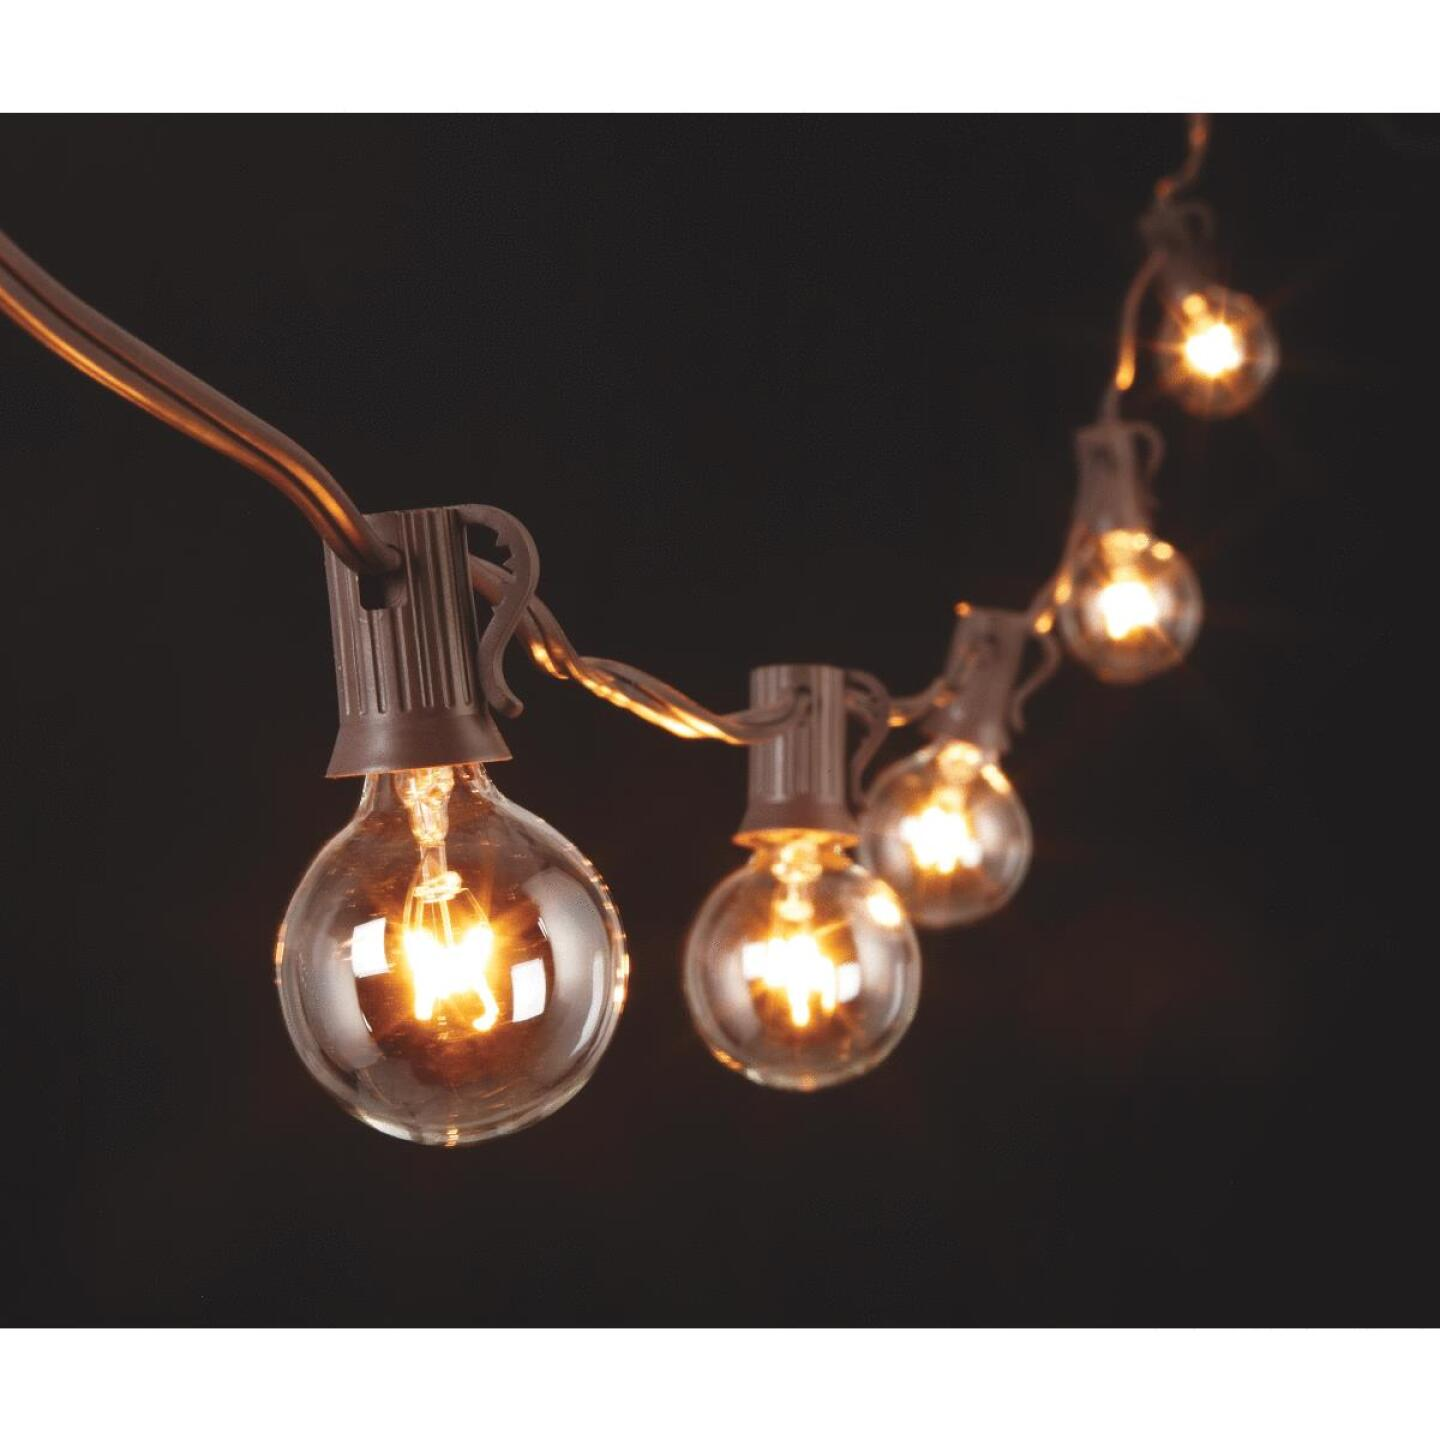 Gerson 20 Ft. 20-Light Clear Bulb String Lights Image 3